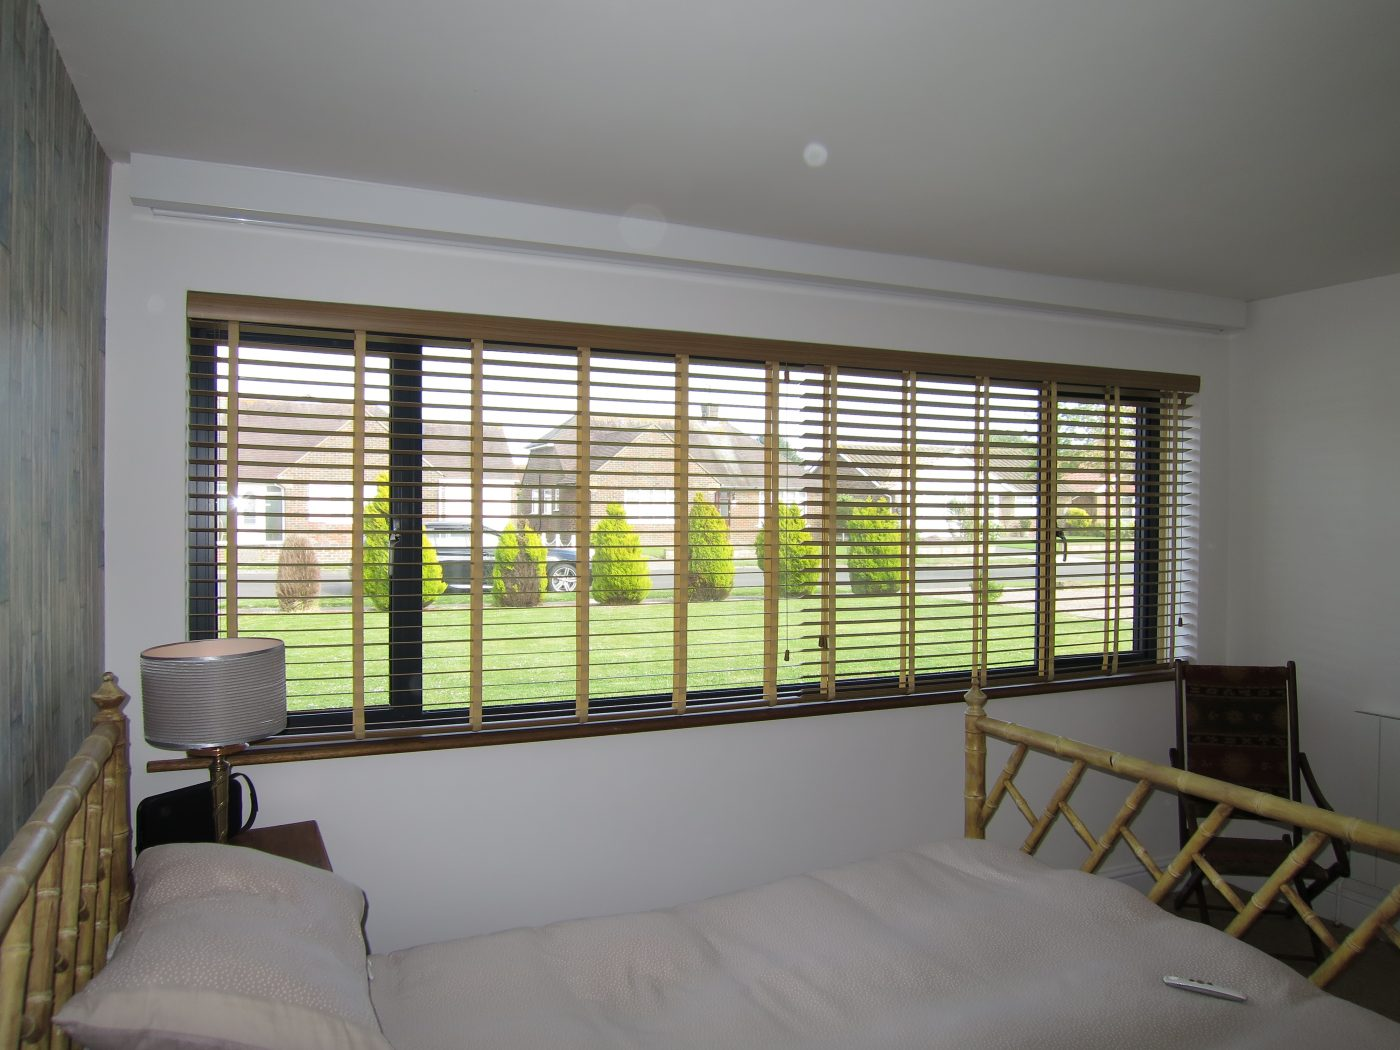 Electric Blinds Chichester The Electric Blind Company